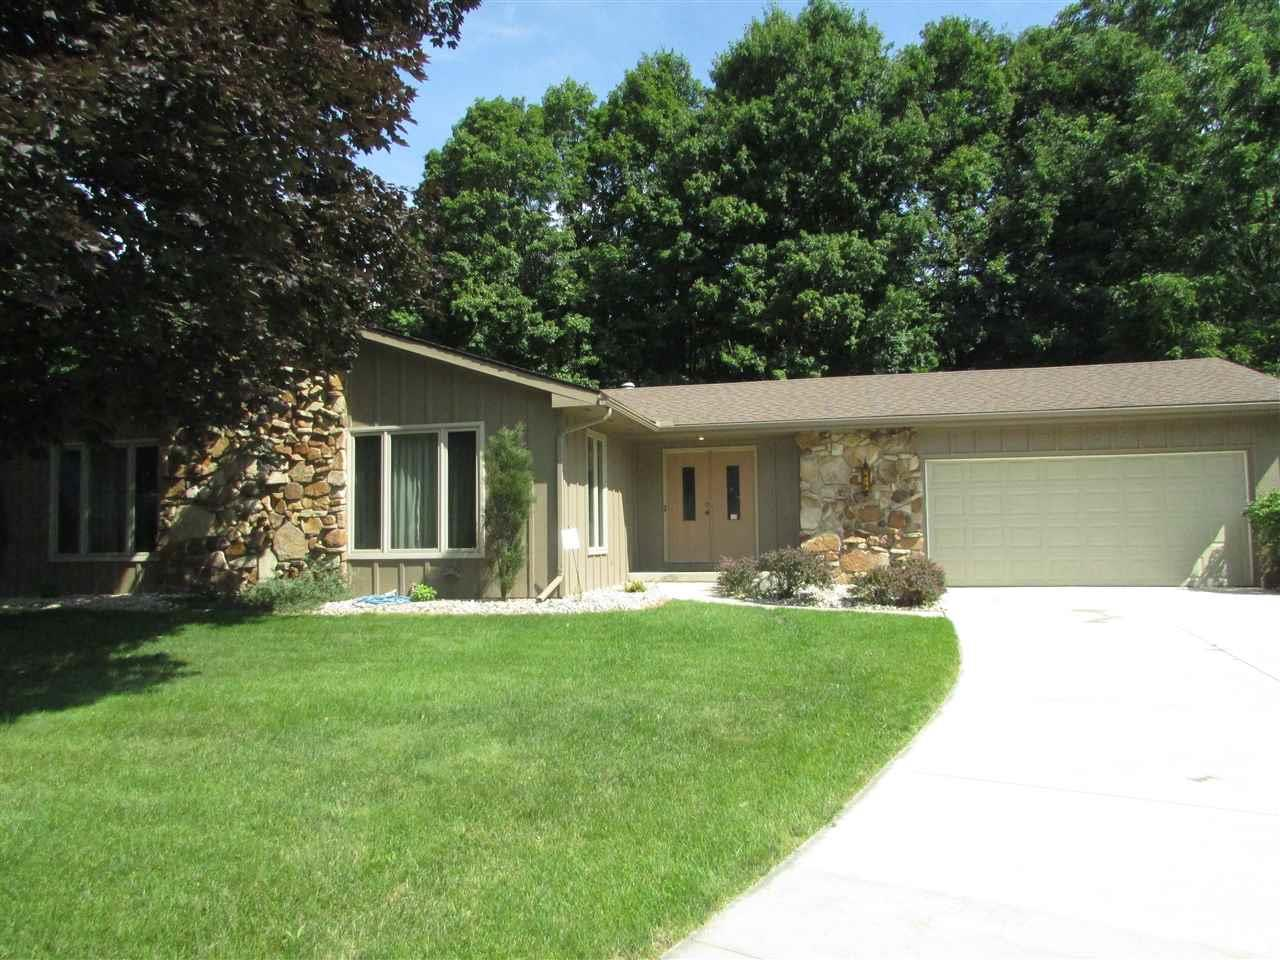 5223 N Monticello, South Bend, IN 46614